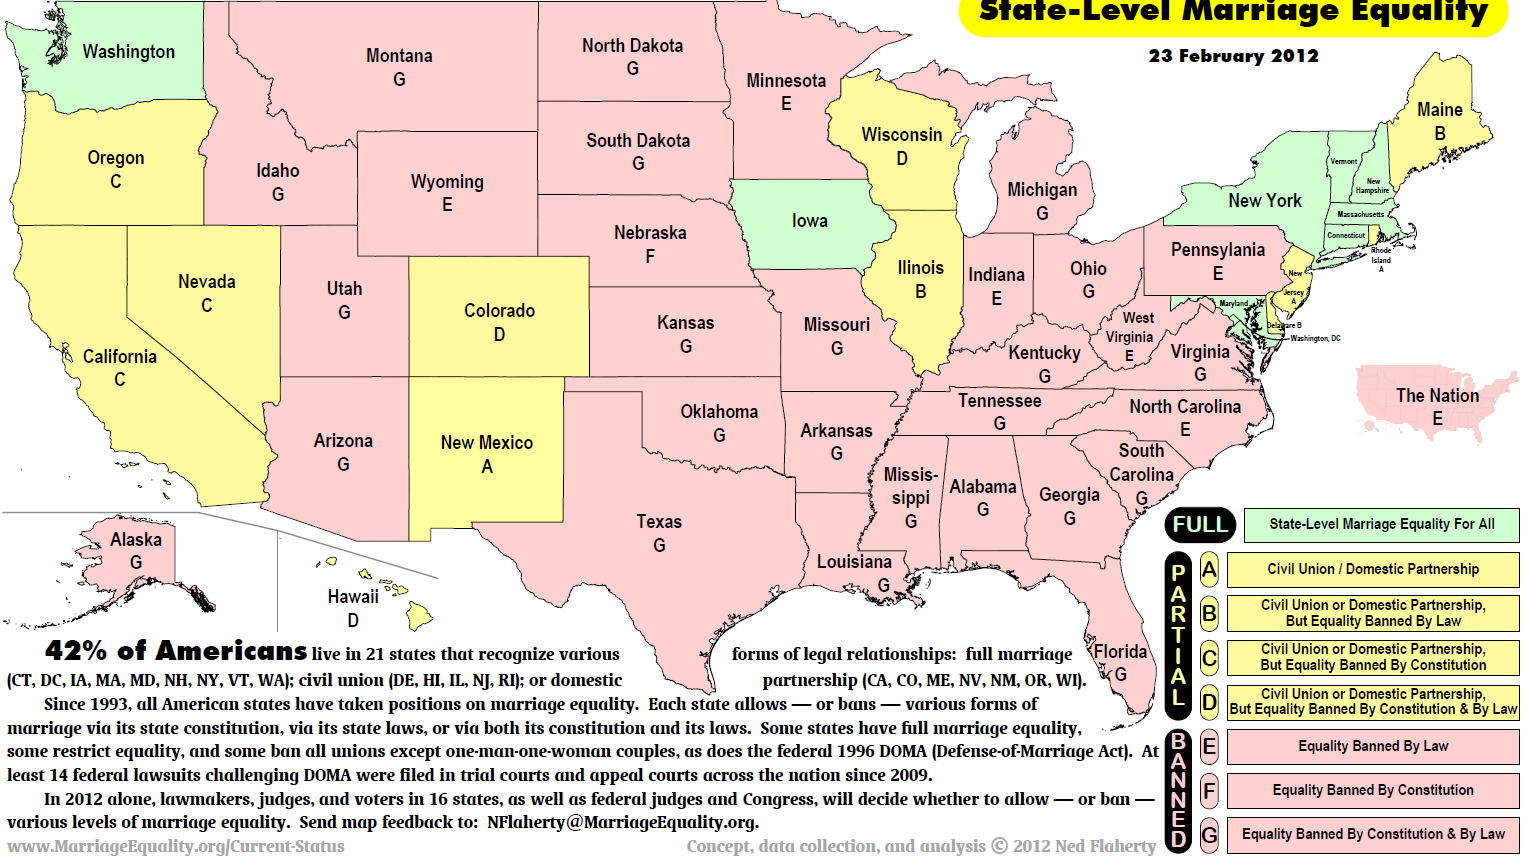 Marriage Usa Map on usa politics, usa africa, usa slavery, usa russia, usa new jersey, usa photography, usa north carolina, usa wife, usa english, usa movies, usa man, usa real estate, usa television, usa insurance, usa long island, usa love, usa home, usa housing,